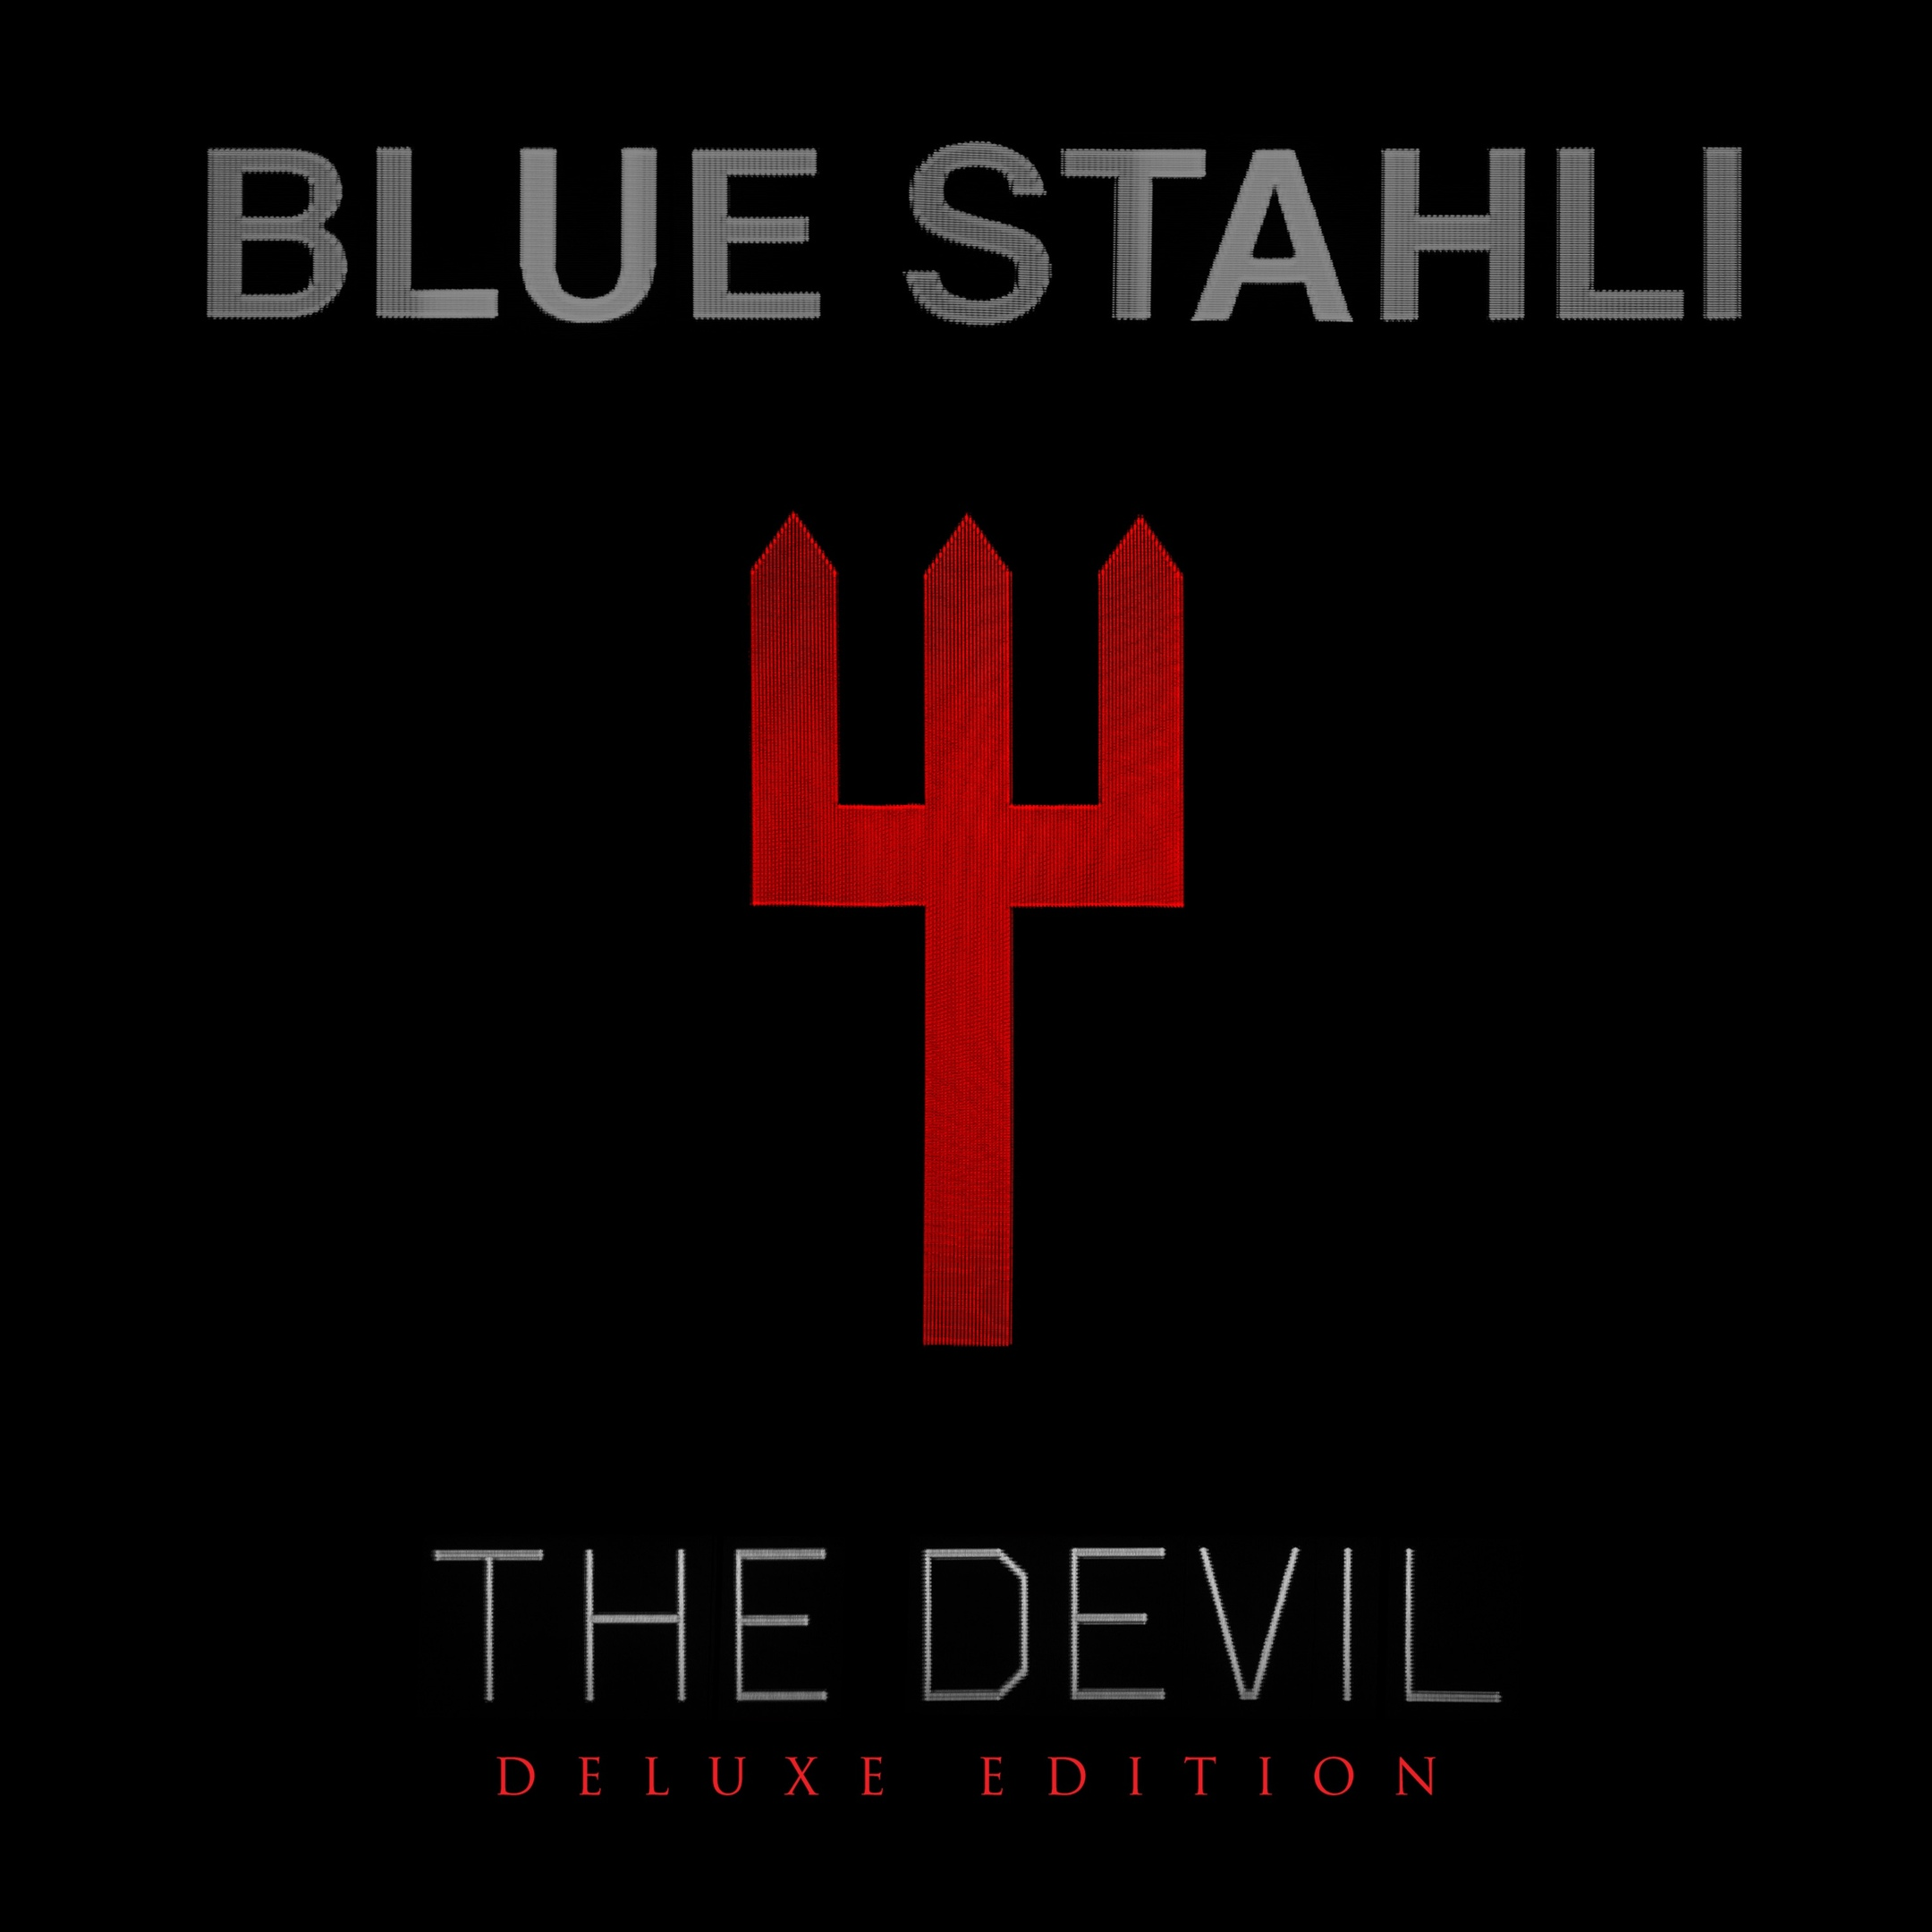 Blue Stahli album The Devil (Deluxe Edition)